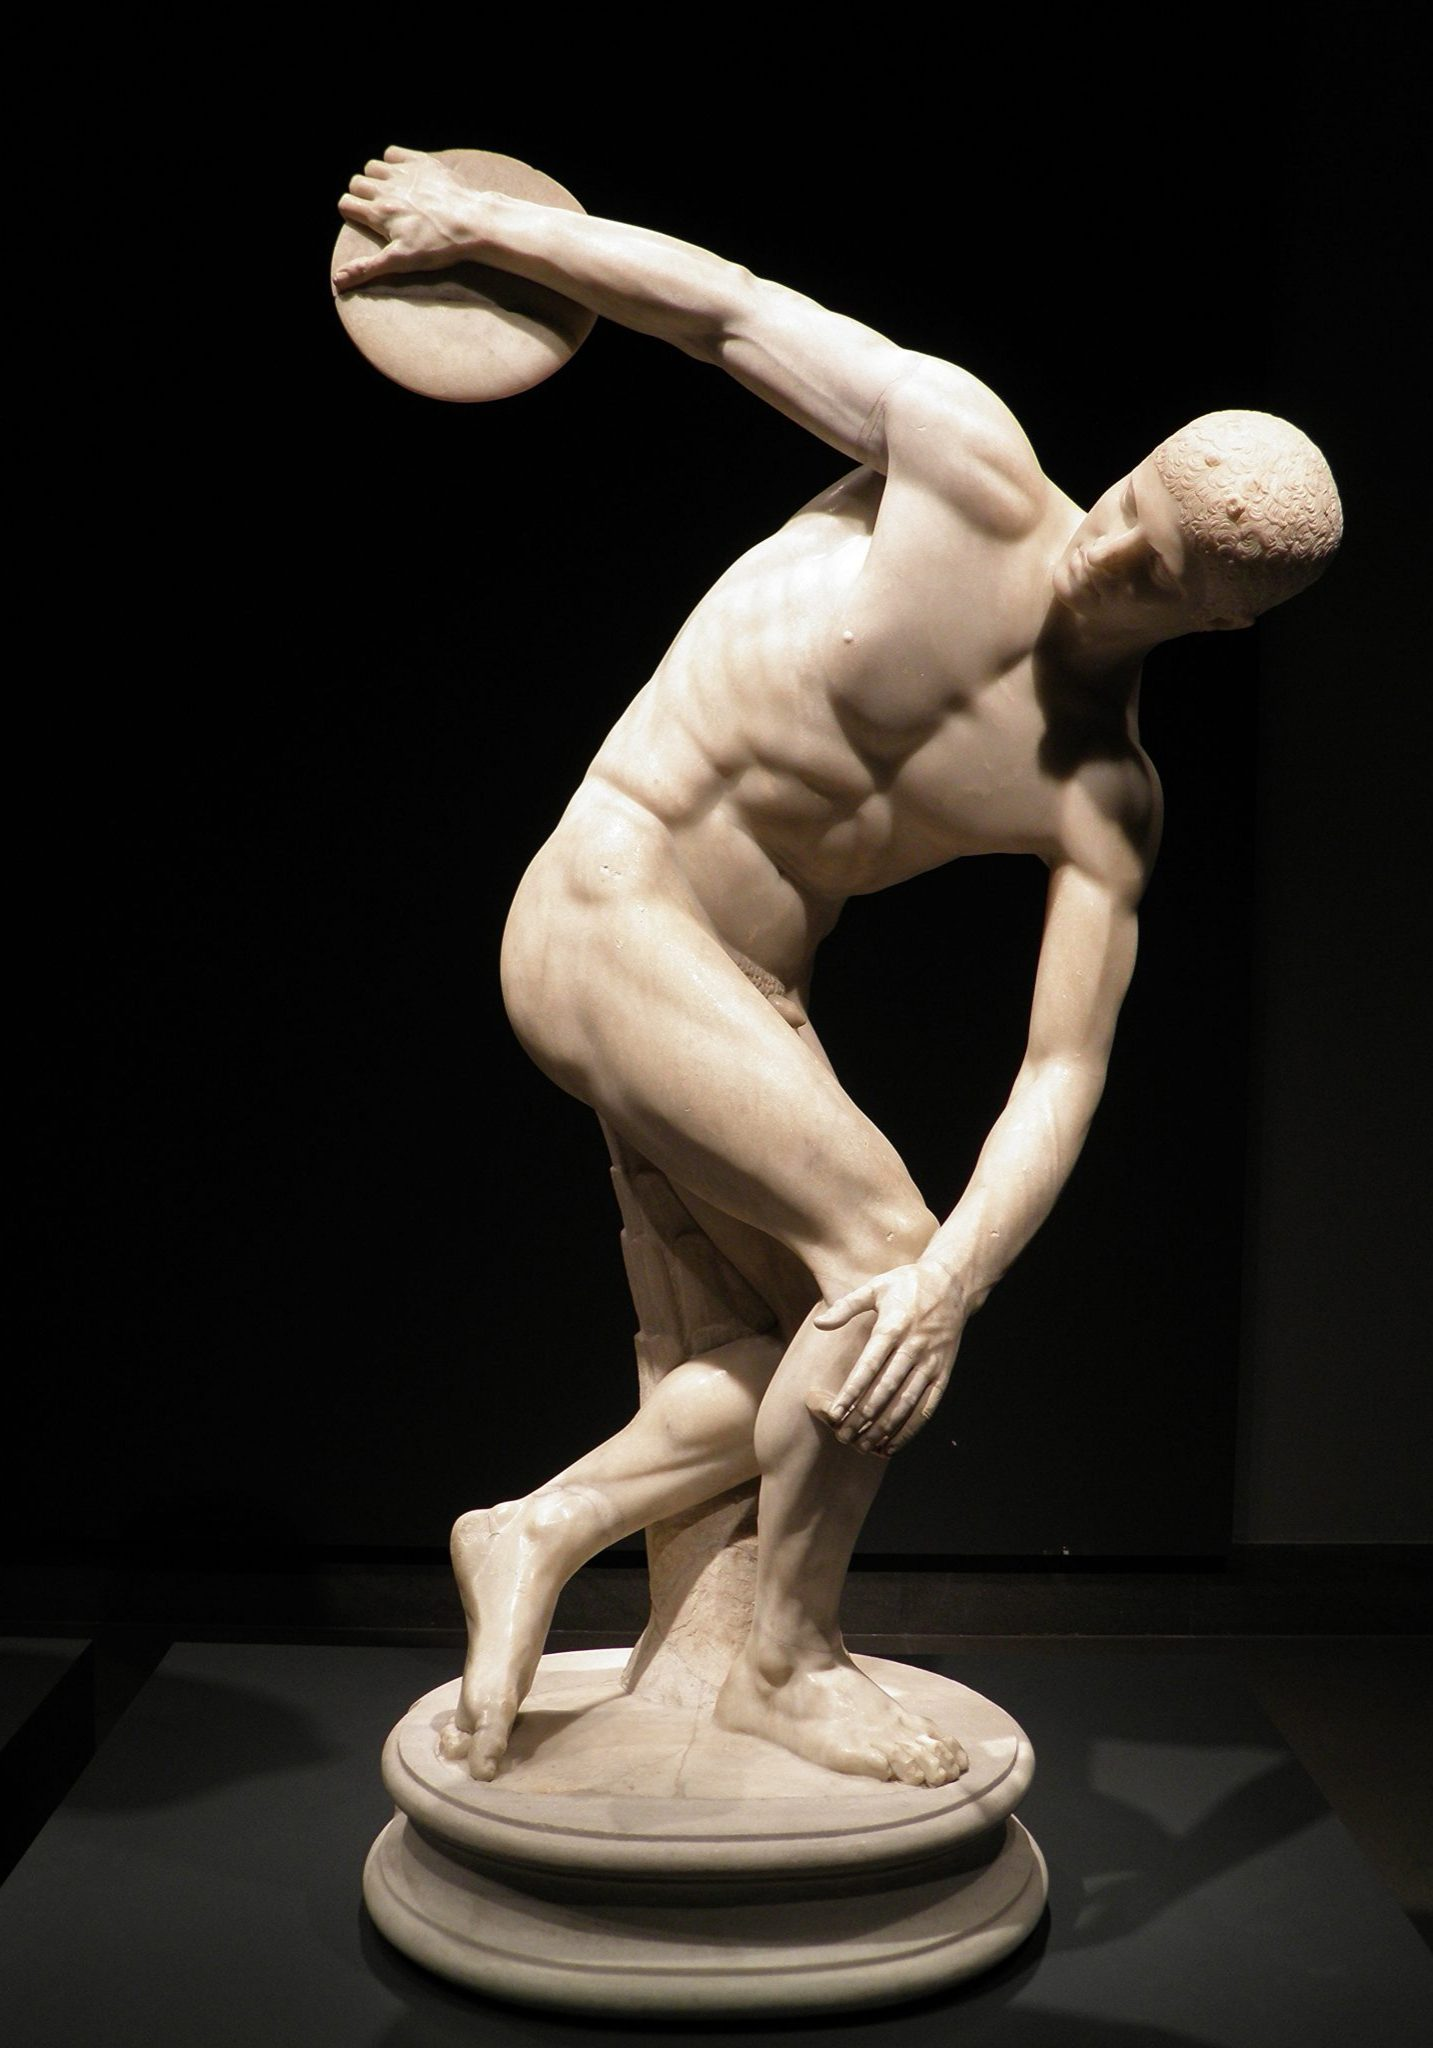 <p><i>The Discobolus.</i></p><p>Roman copy after original of 5th c. BCE,</p><p>attributed to Myron. Marble.</p><p>British Museum, London.</p>